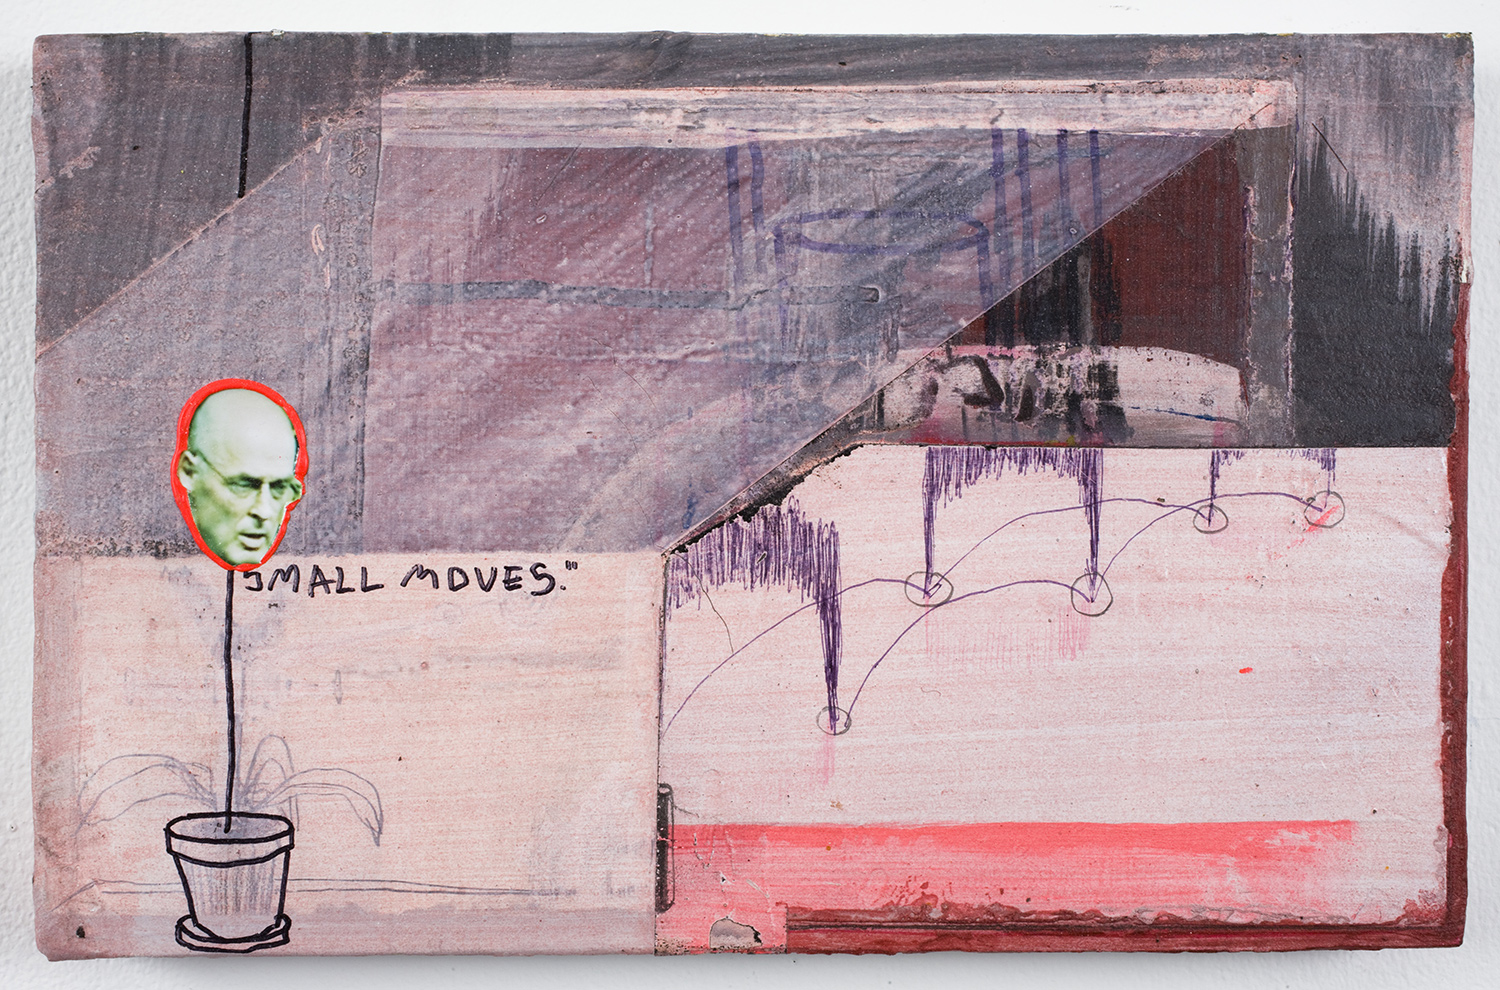 """Small Moves . Acrylic on panel. 7"""" x 11"""". 2010."""